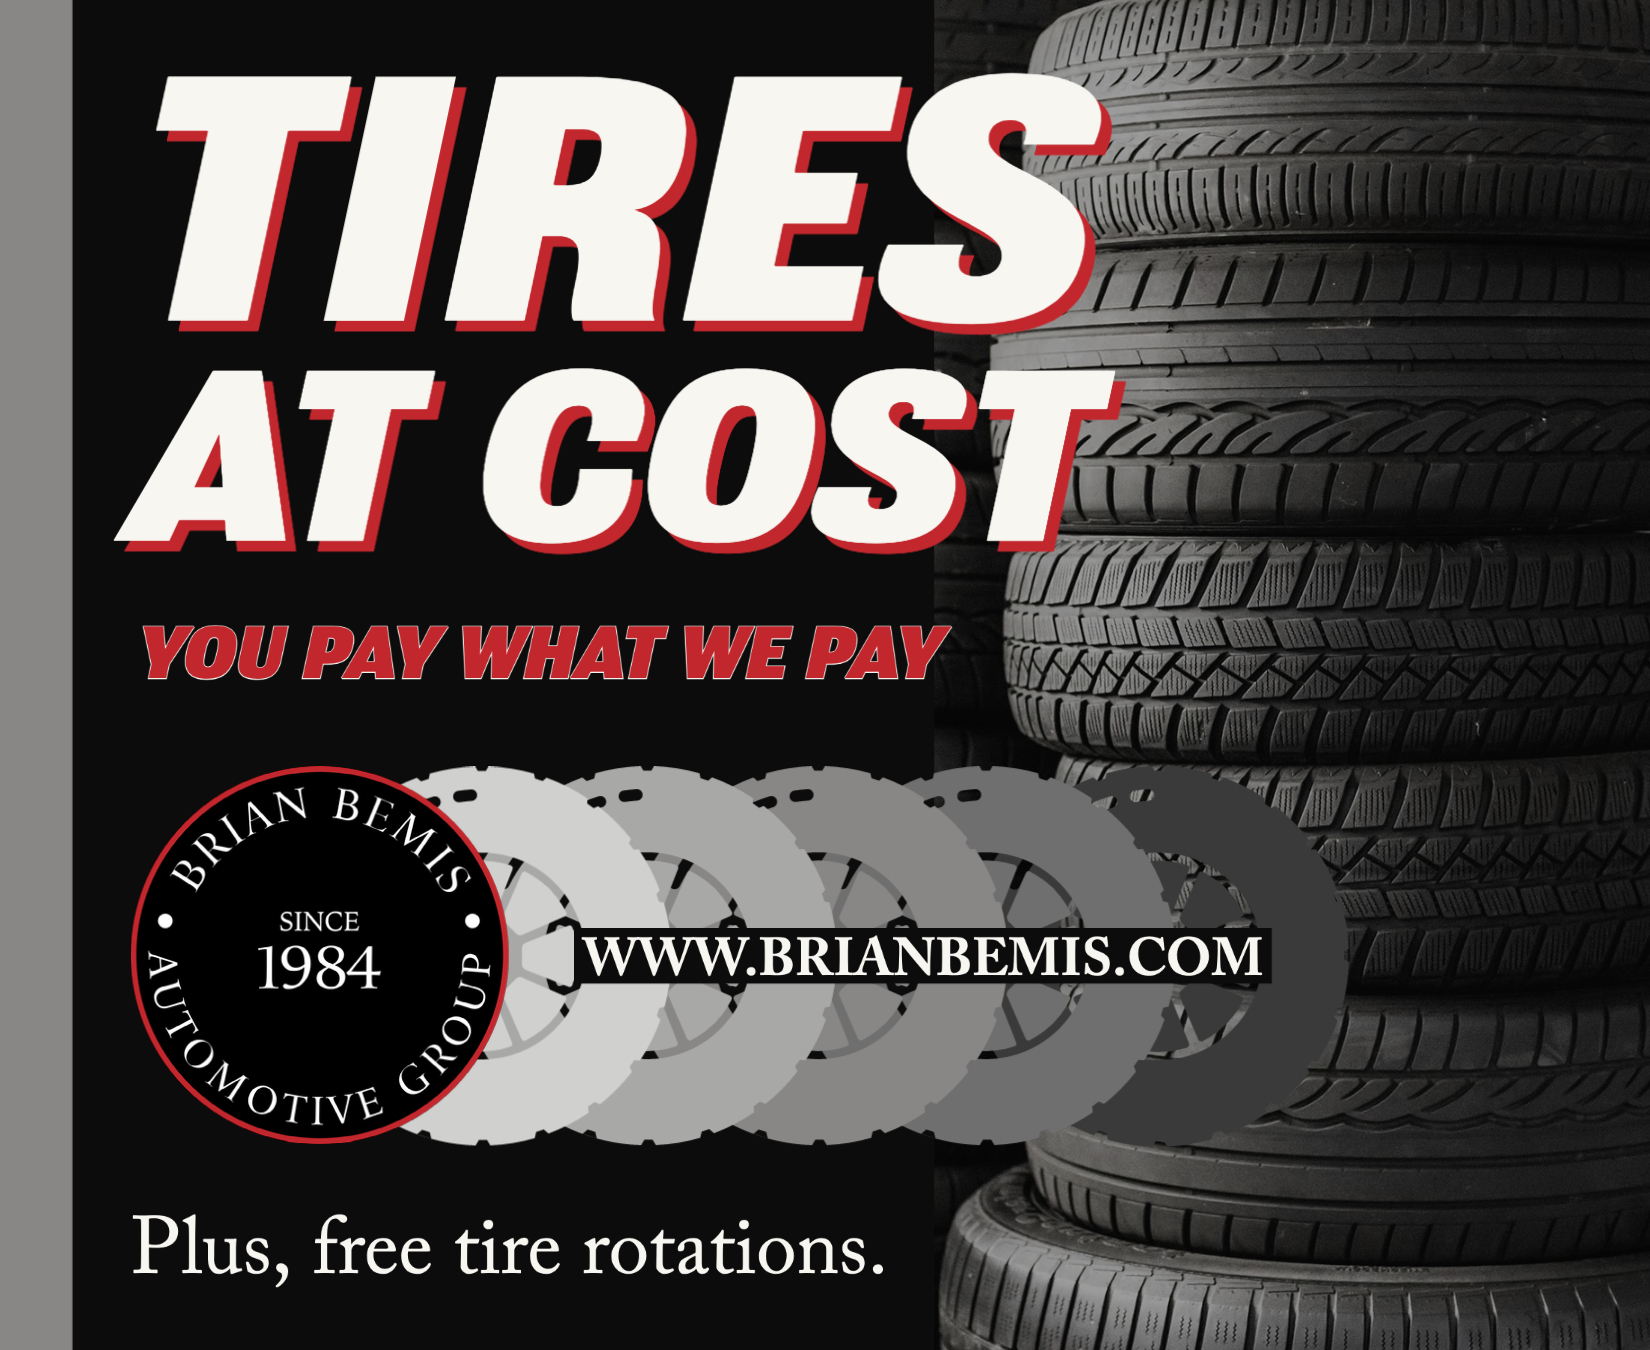 Tires at Cost in Dekalb, IL You Pay What We Pay